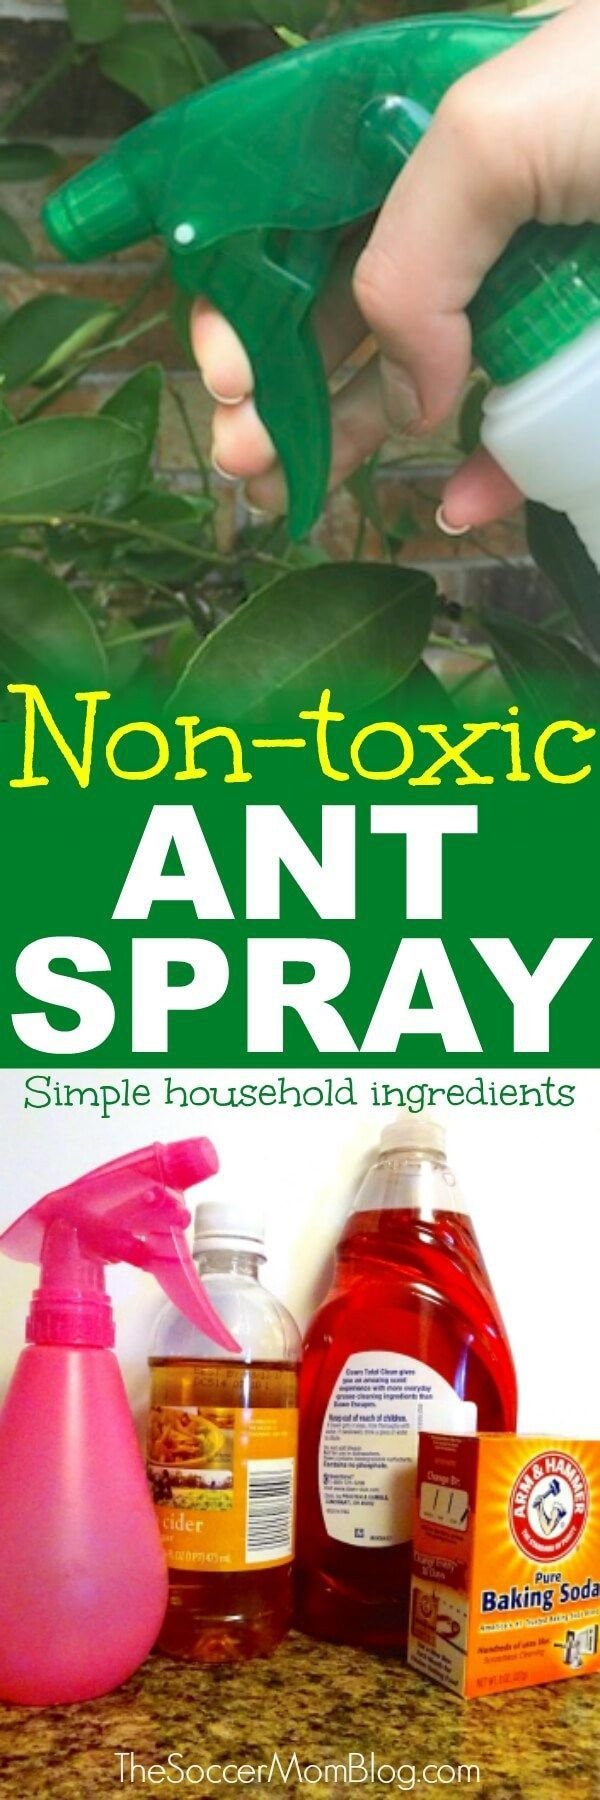 Forget harsh chemicals! This DIY natural ant repellent spray is safe, easy, cheap, and IT WORKS! Safe for use around children and pets.